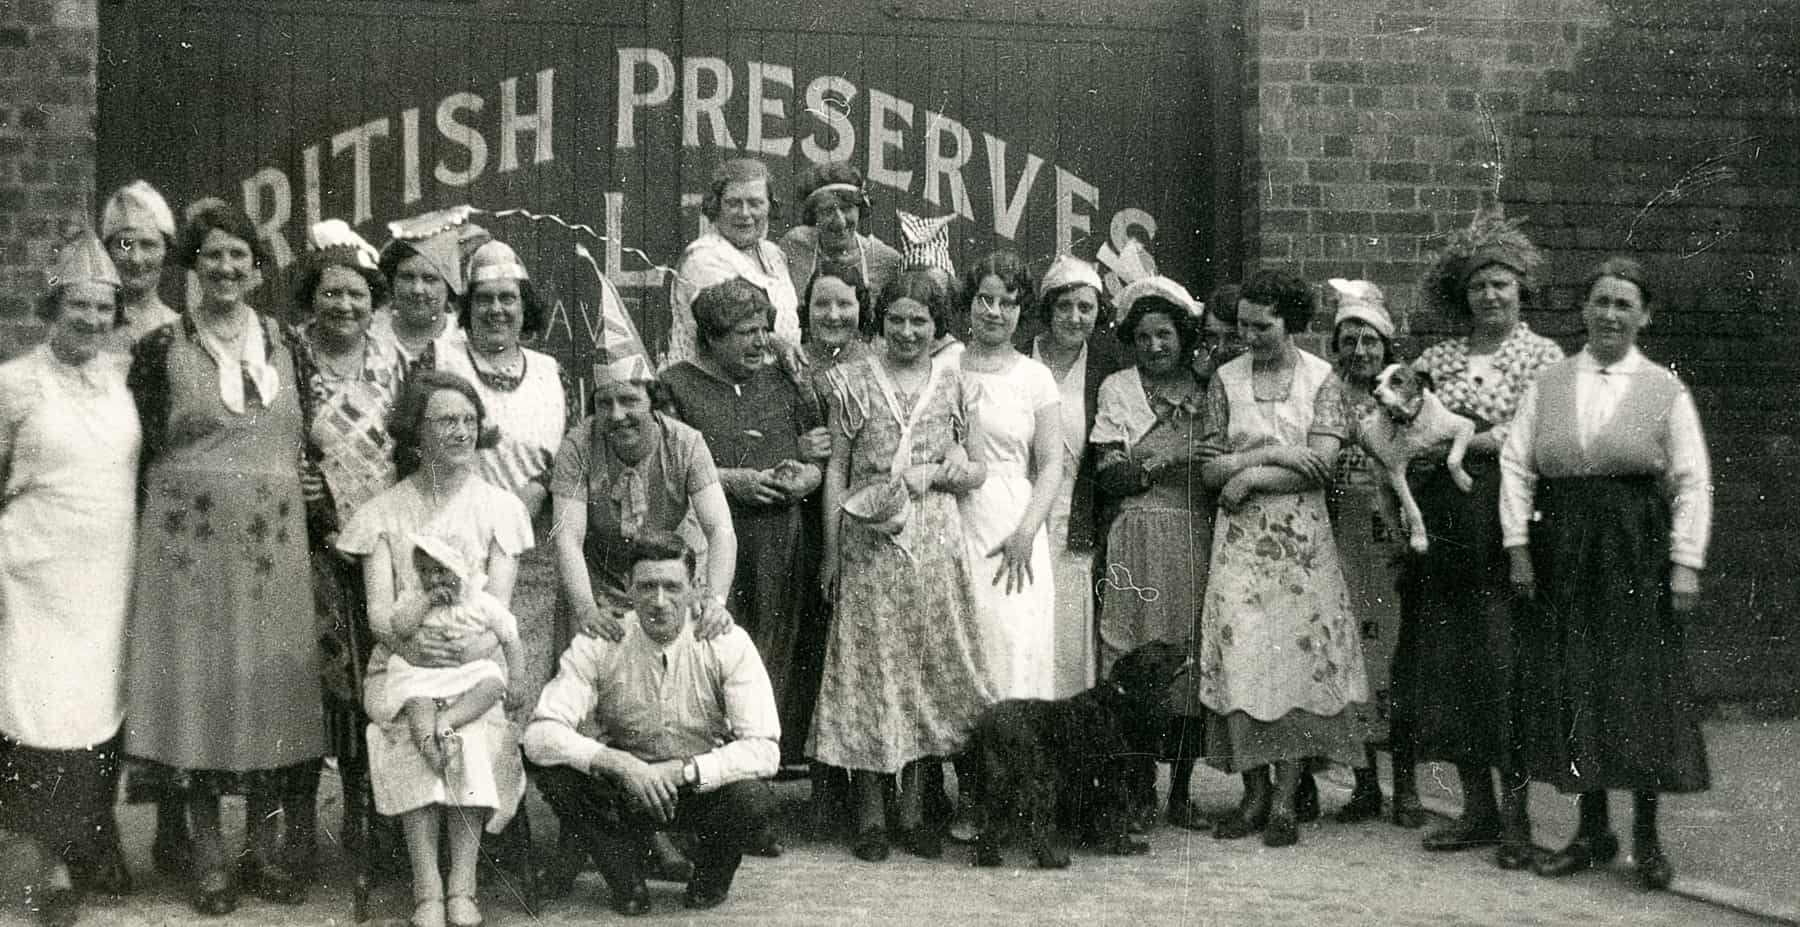 Workers celebrating outside British Preserves Factory, Smethwick. Probably taken at King George's Coronation in 1937